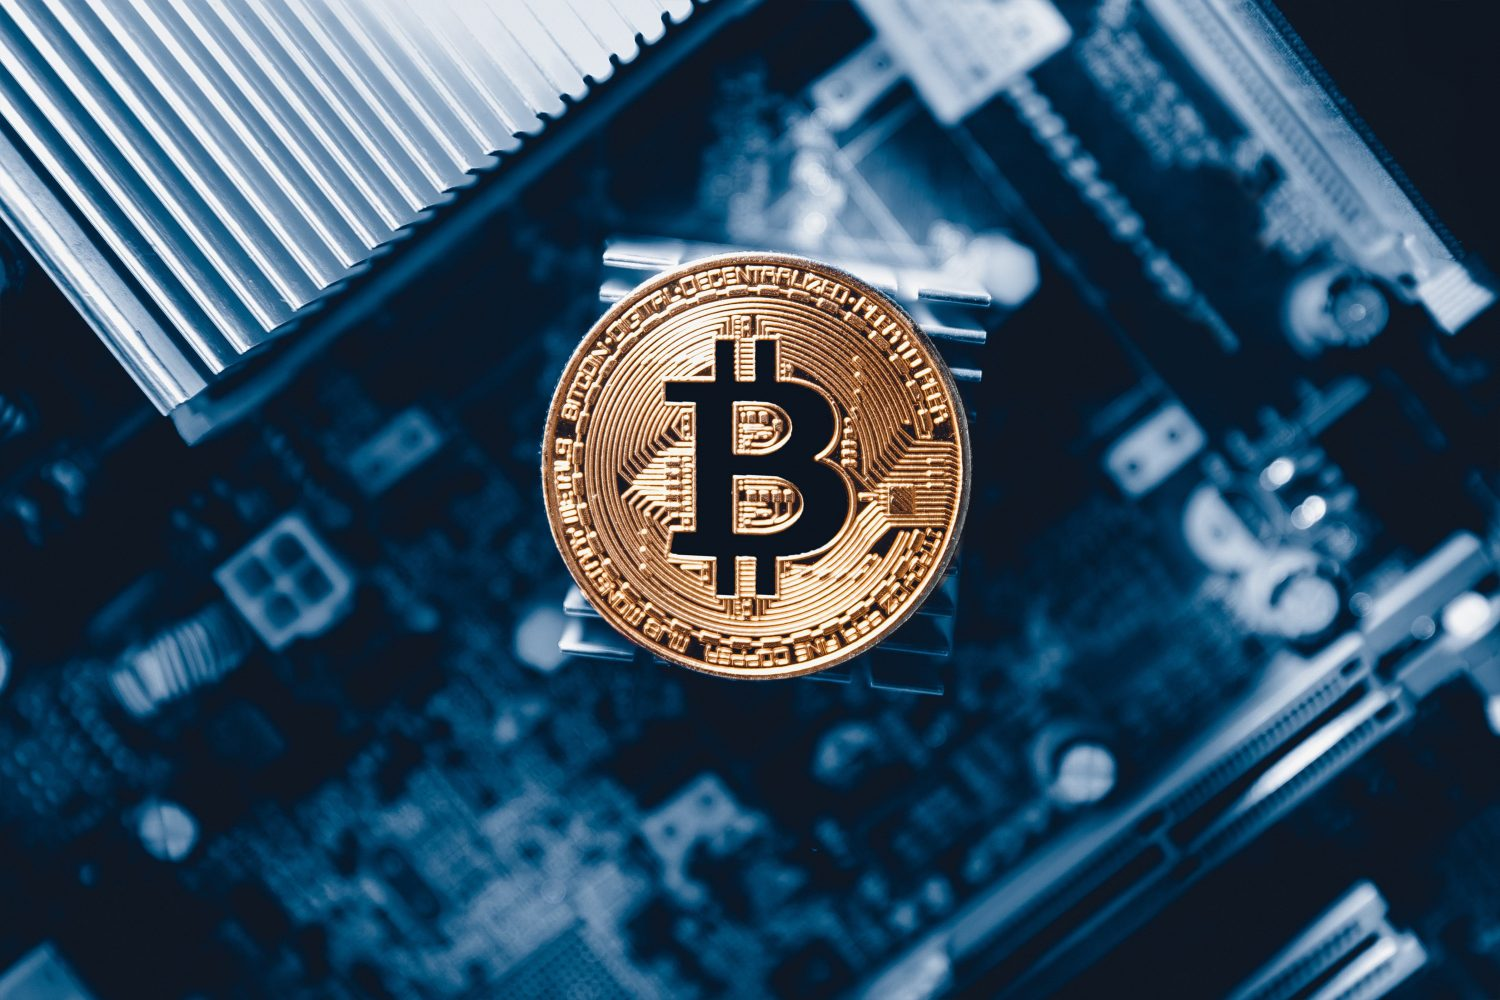 Bitcoin Payment Market – in depth Research about Market Trends & Competitive Landscape with key players Bitaccess, iFinex, BitPay, CoinsBank